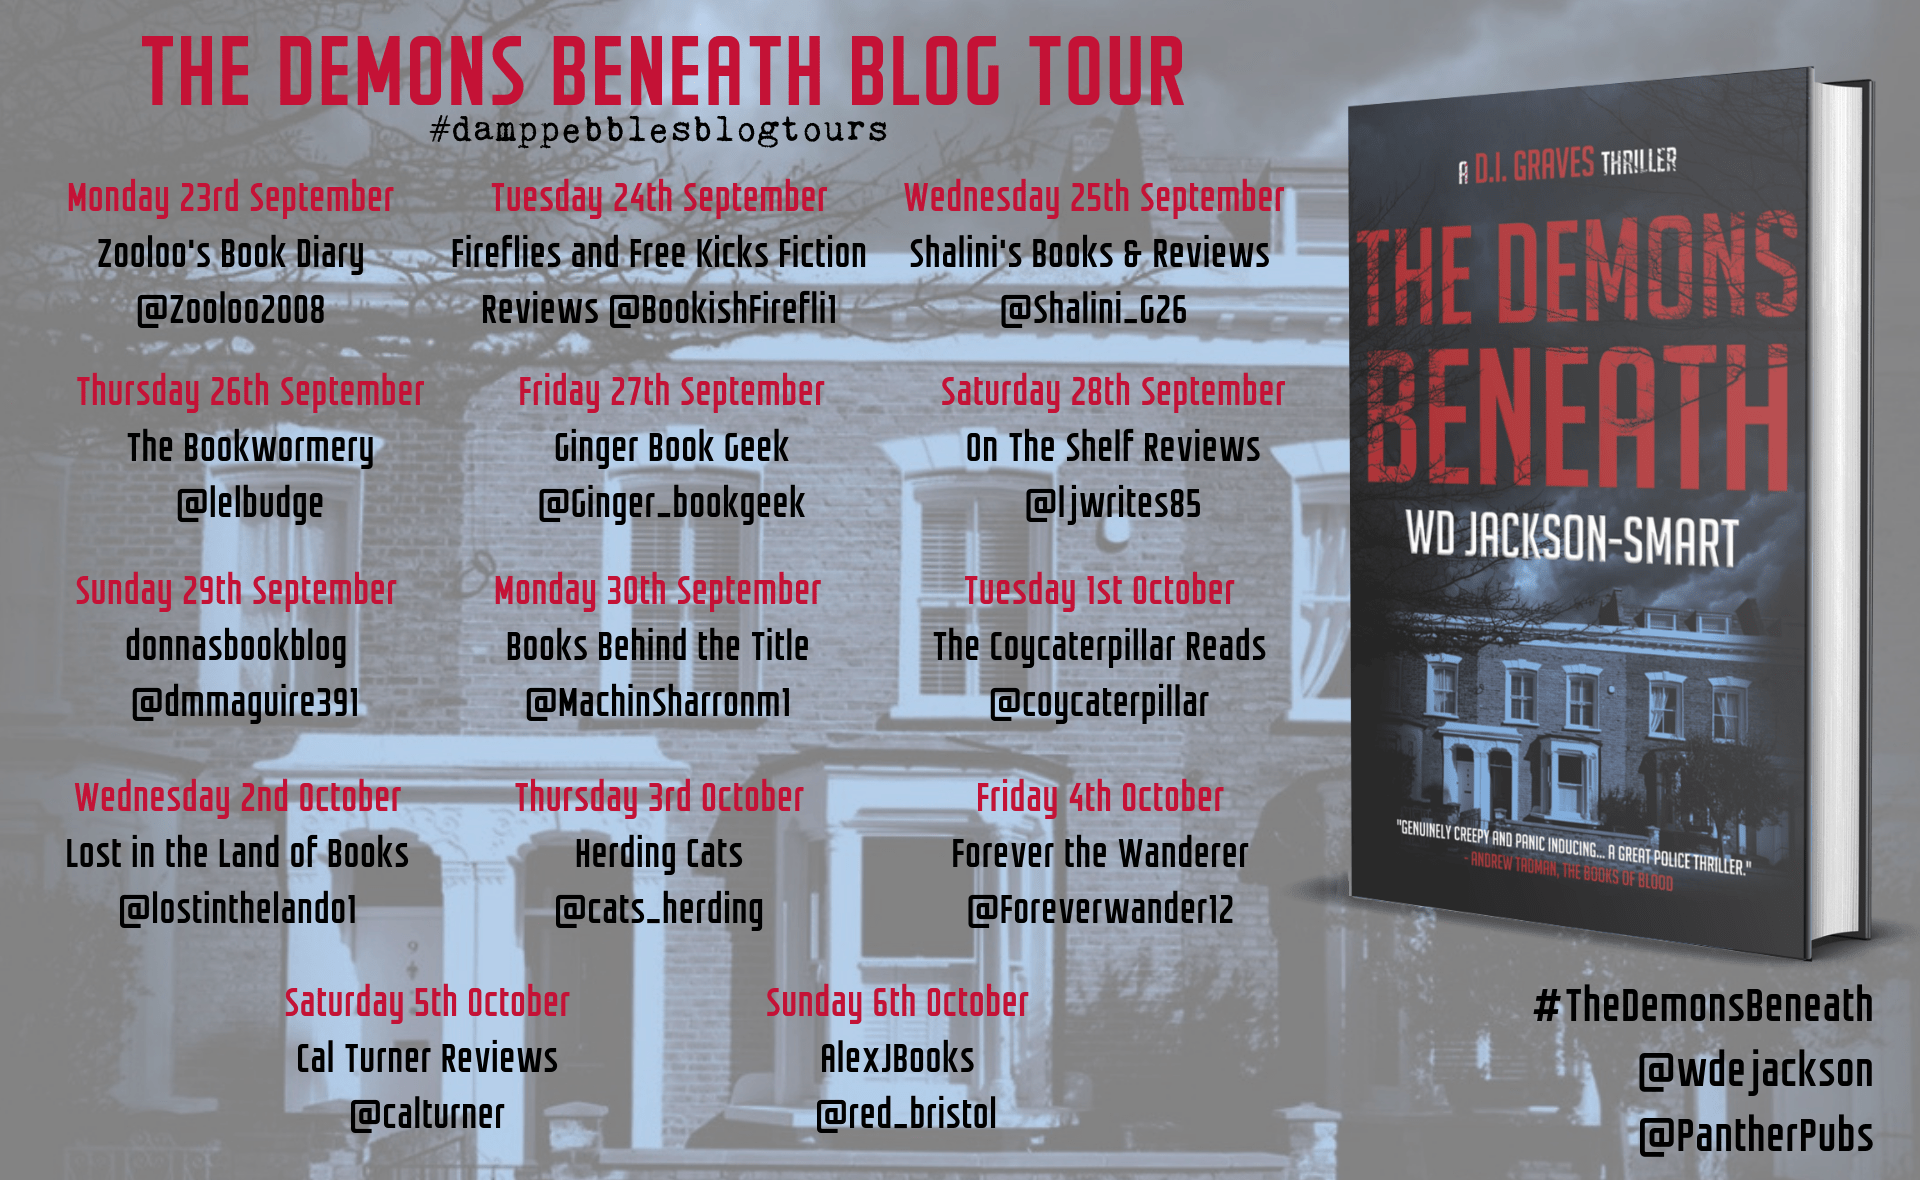 #BookReview of The Demon Beneath by W.D. Jackson-Smart @wdejackson @damppebbles @PantherPubs #TheDemonBeneath